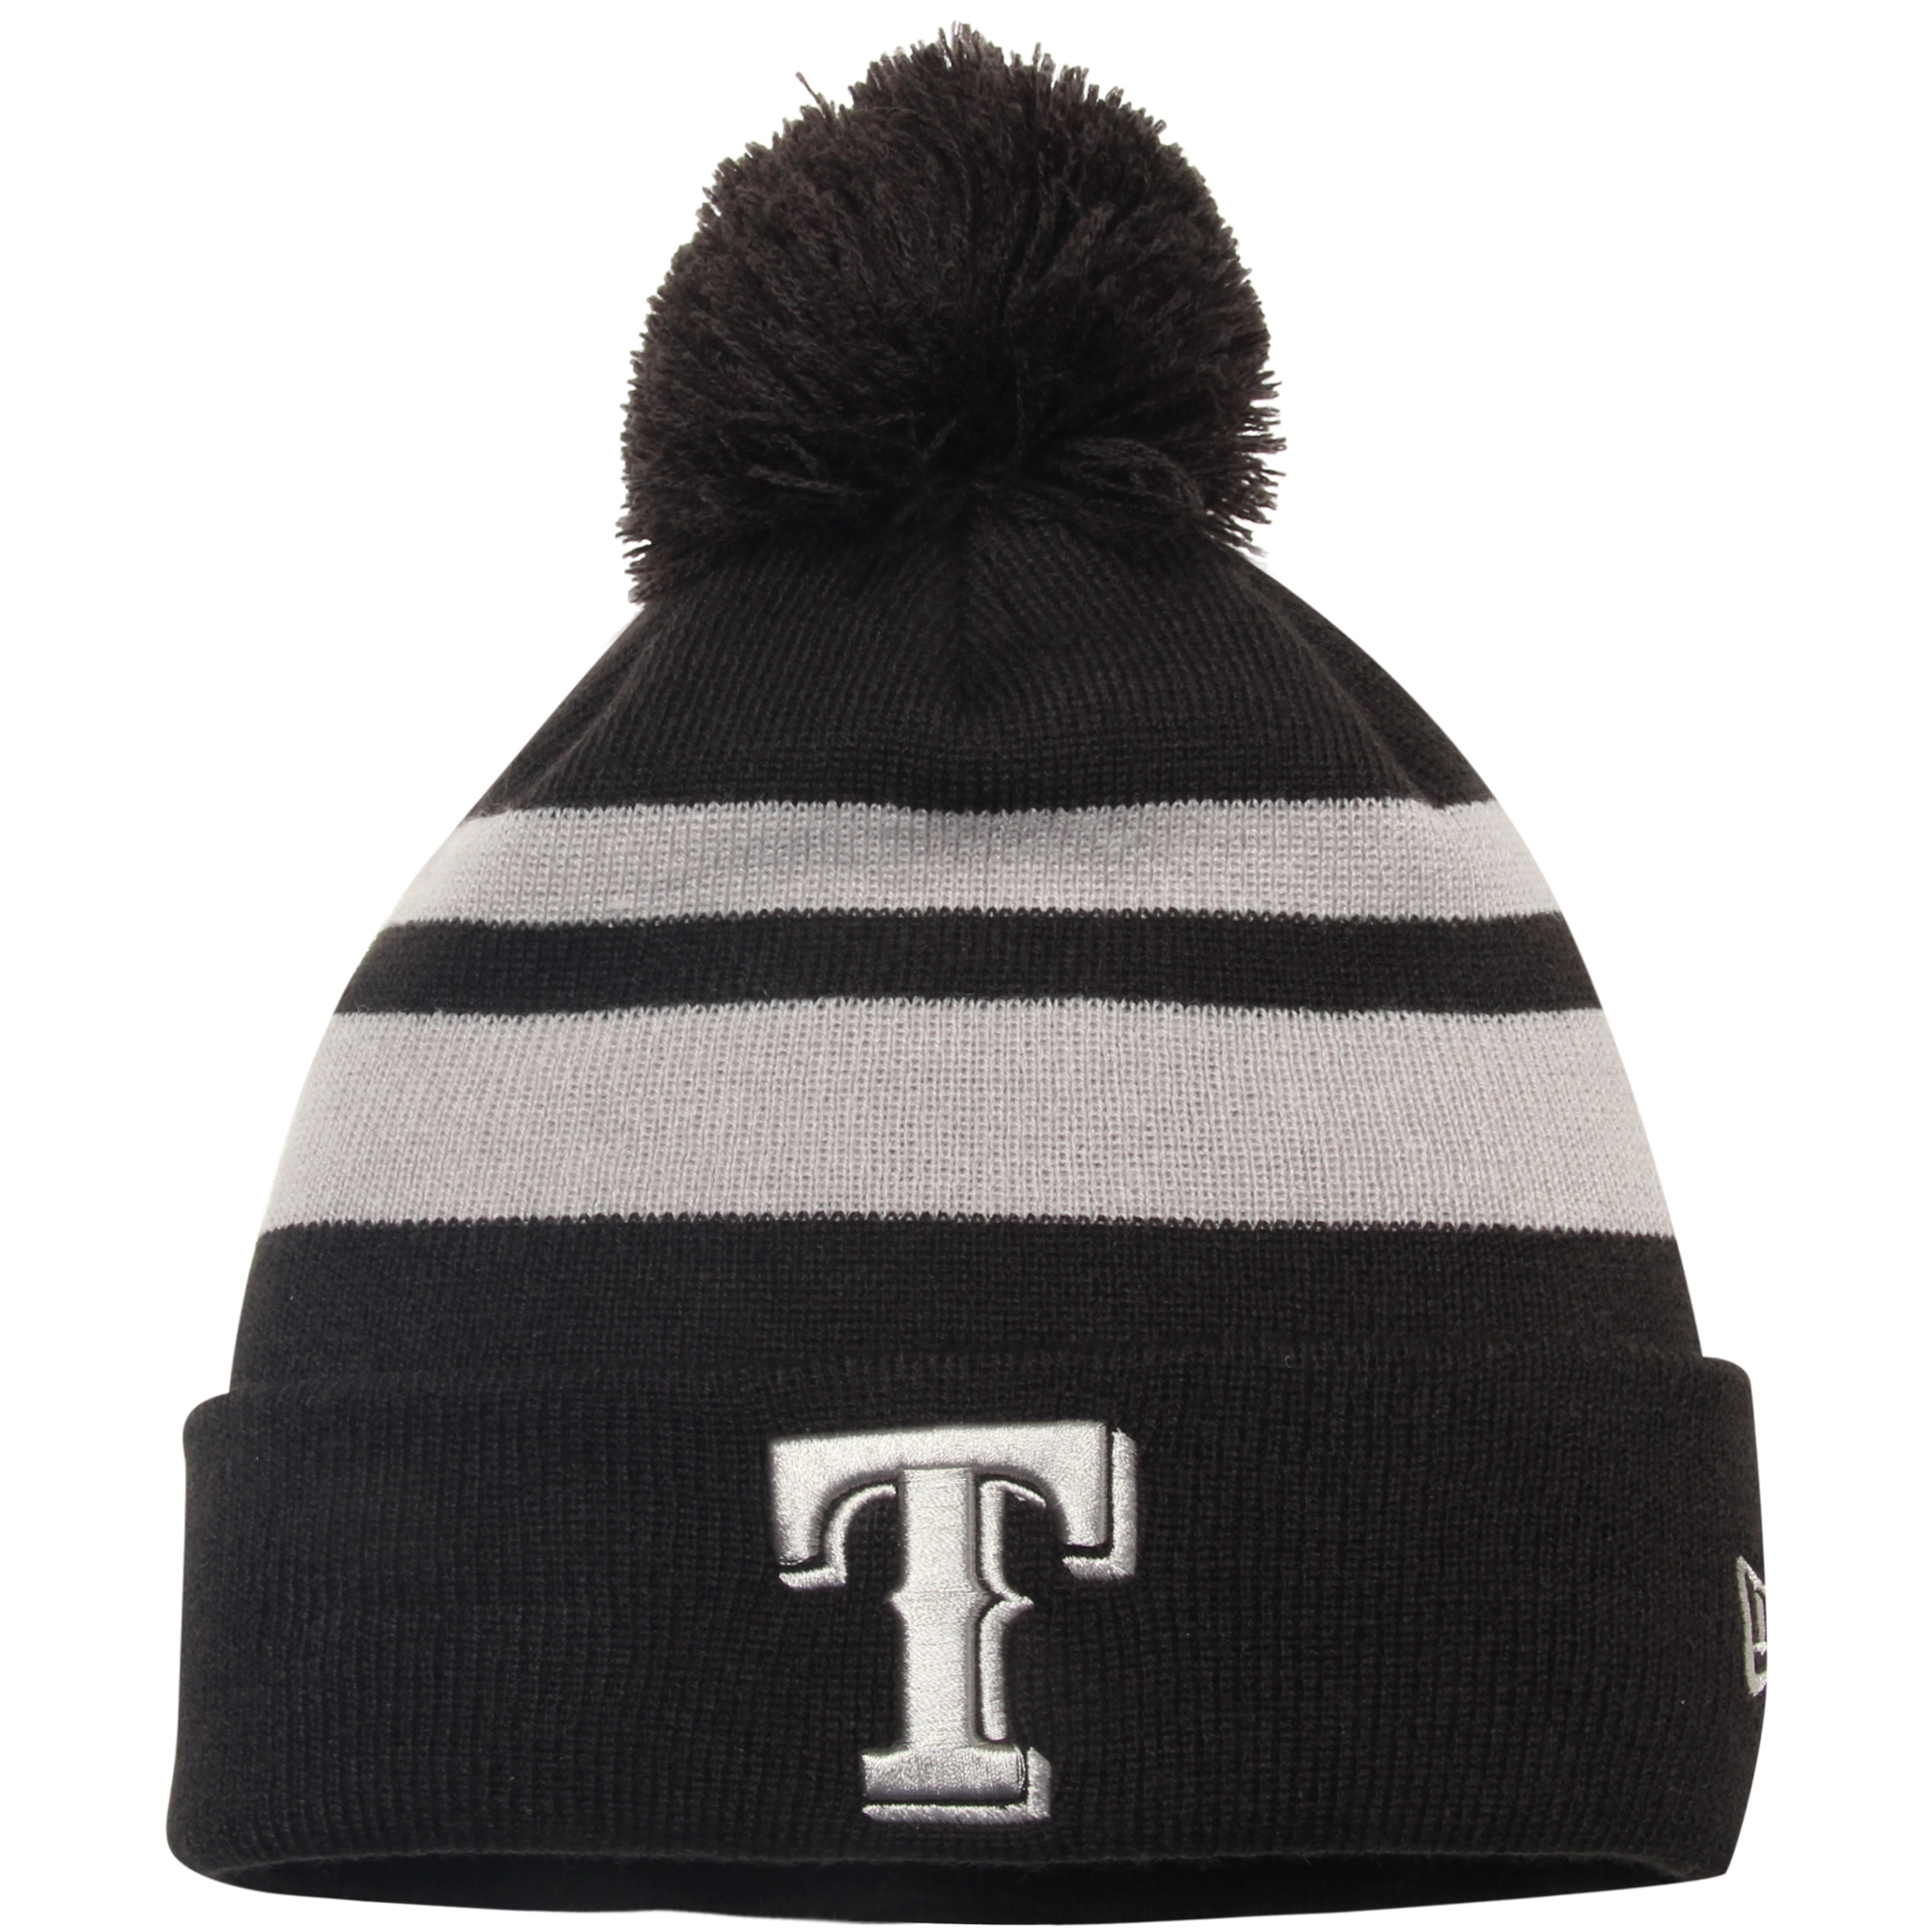 Texas Rangers New Era Double Stripe Cuffed Knit Hat With Pom Black OSFA by NEW ERA CAP COMPANY